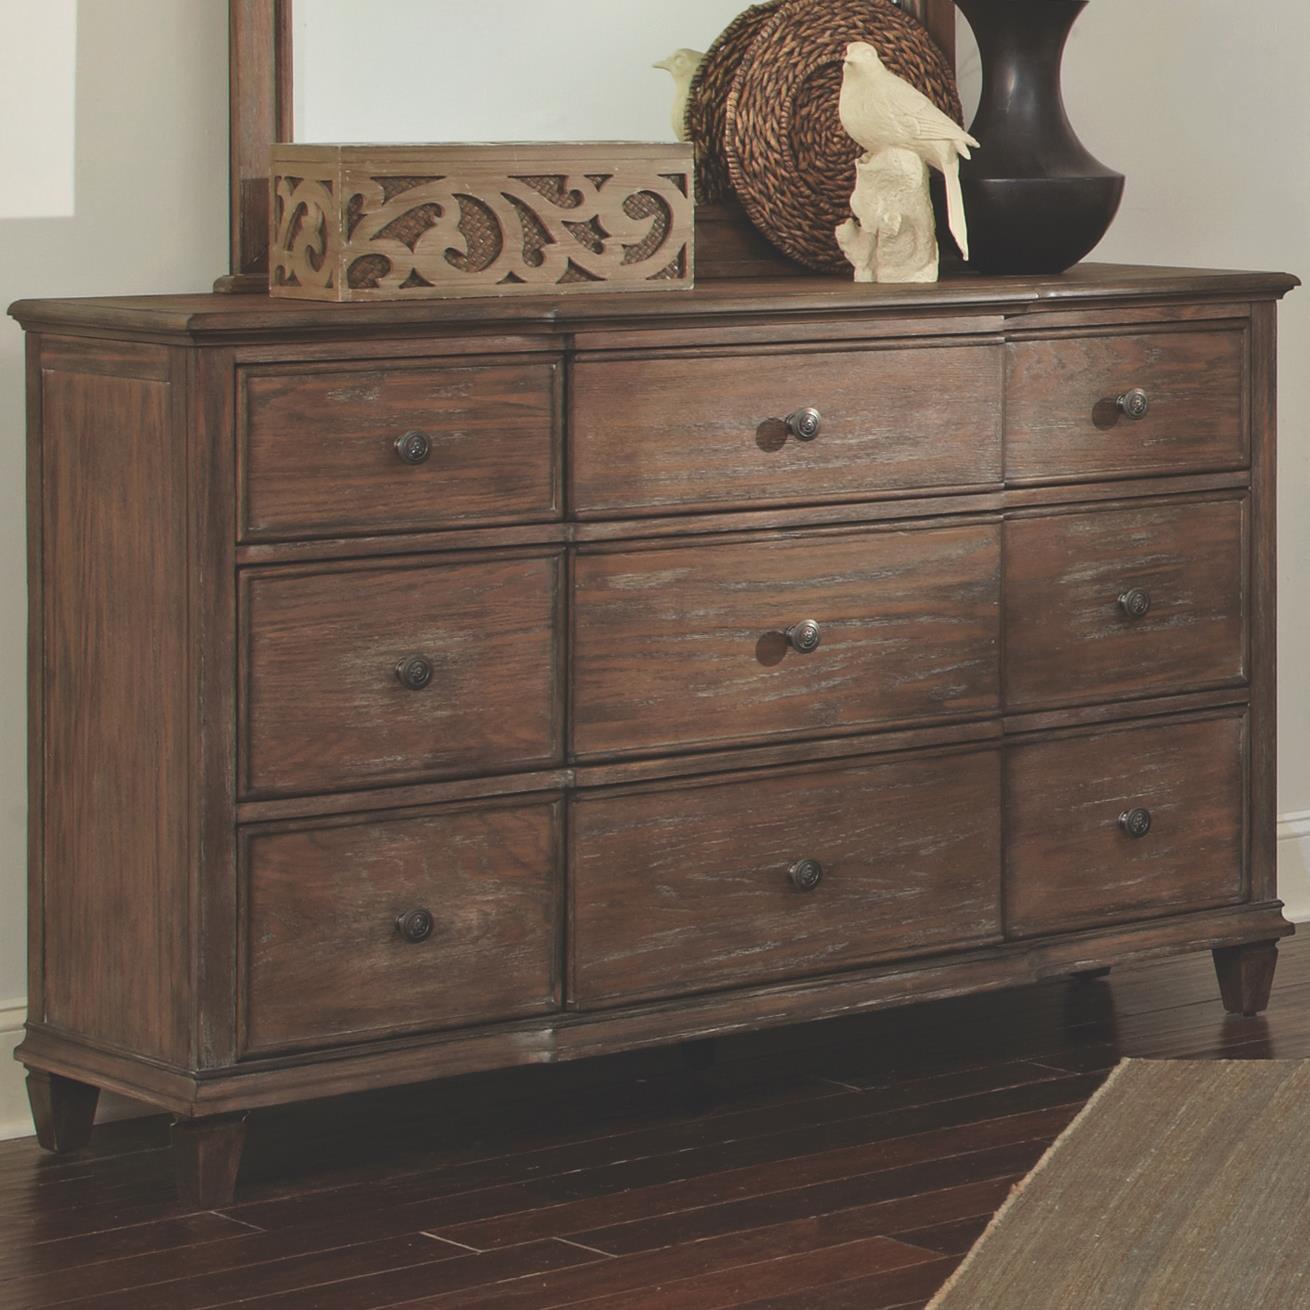 Coaster Dalgarno Dresser with 9 Drawers - Item Number: 204243